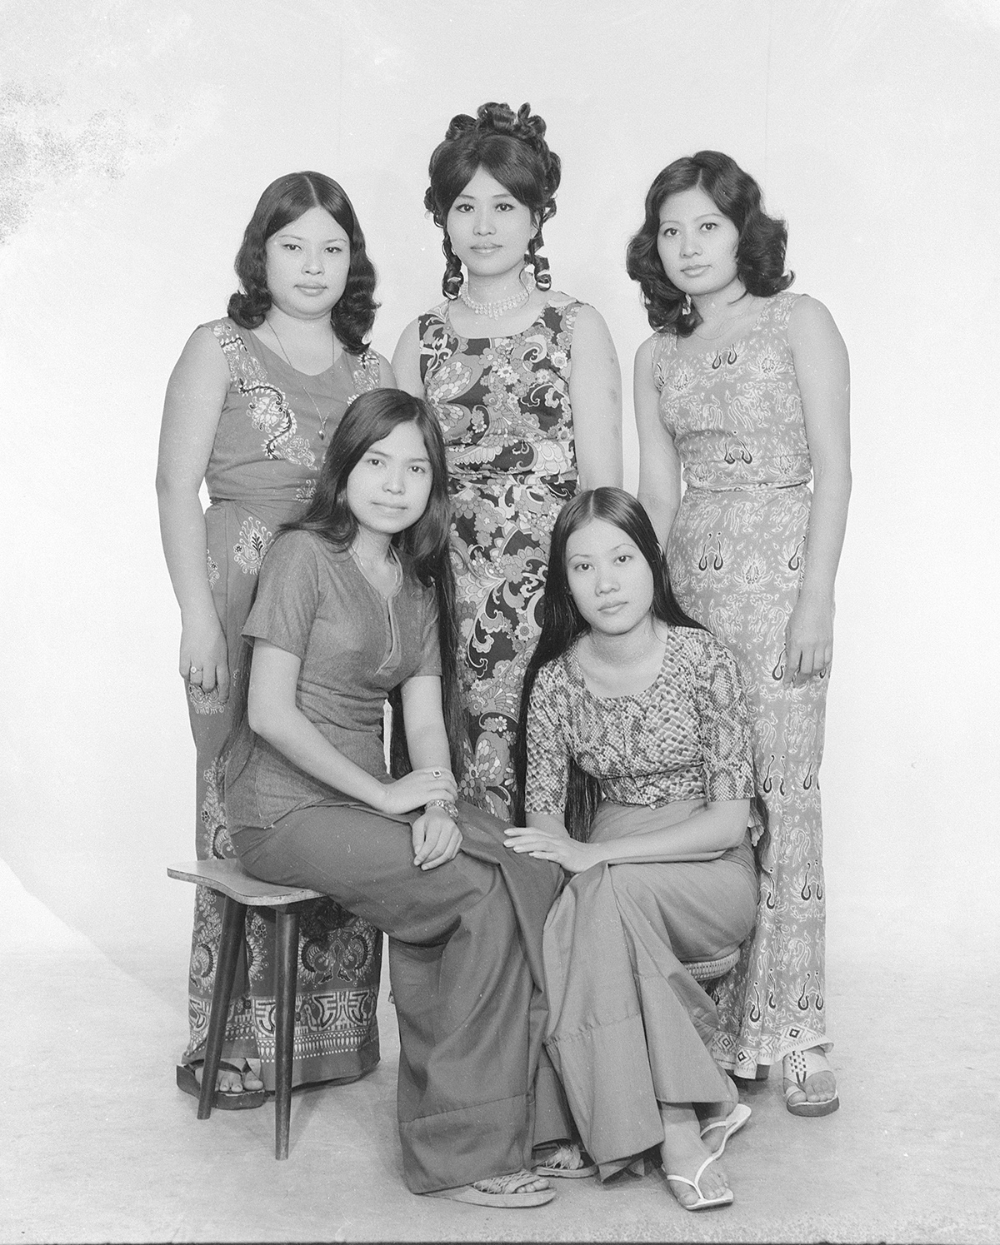 Har Si Yone, Bellay Photo Studio, Yangon,  1970